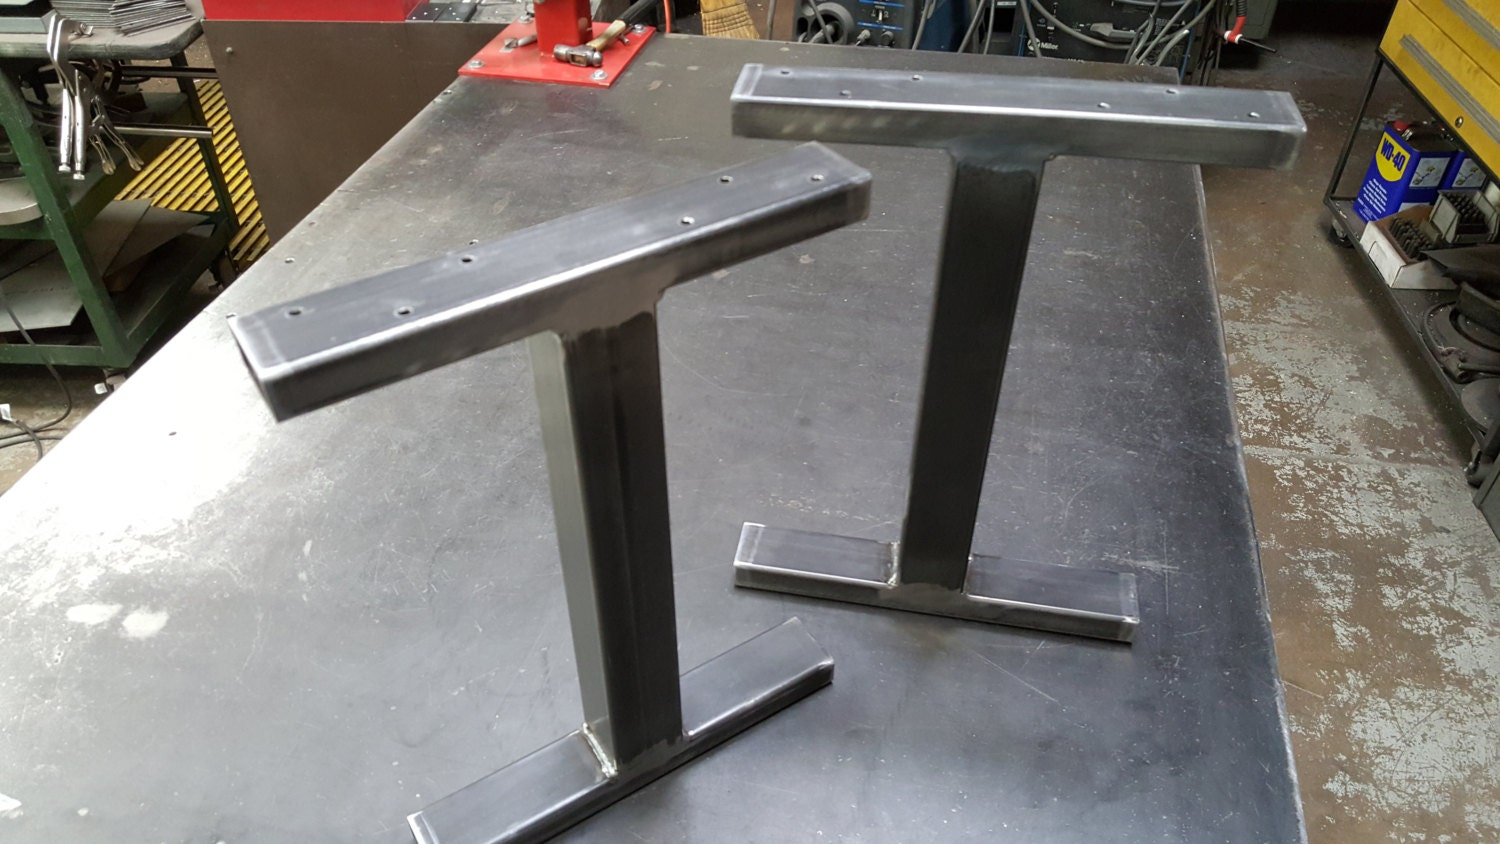 Industrial T Legs Model Btt06 Bench Table Metal Legs End Table Legs 3 X 1 Tubing Set Of 2 Legs